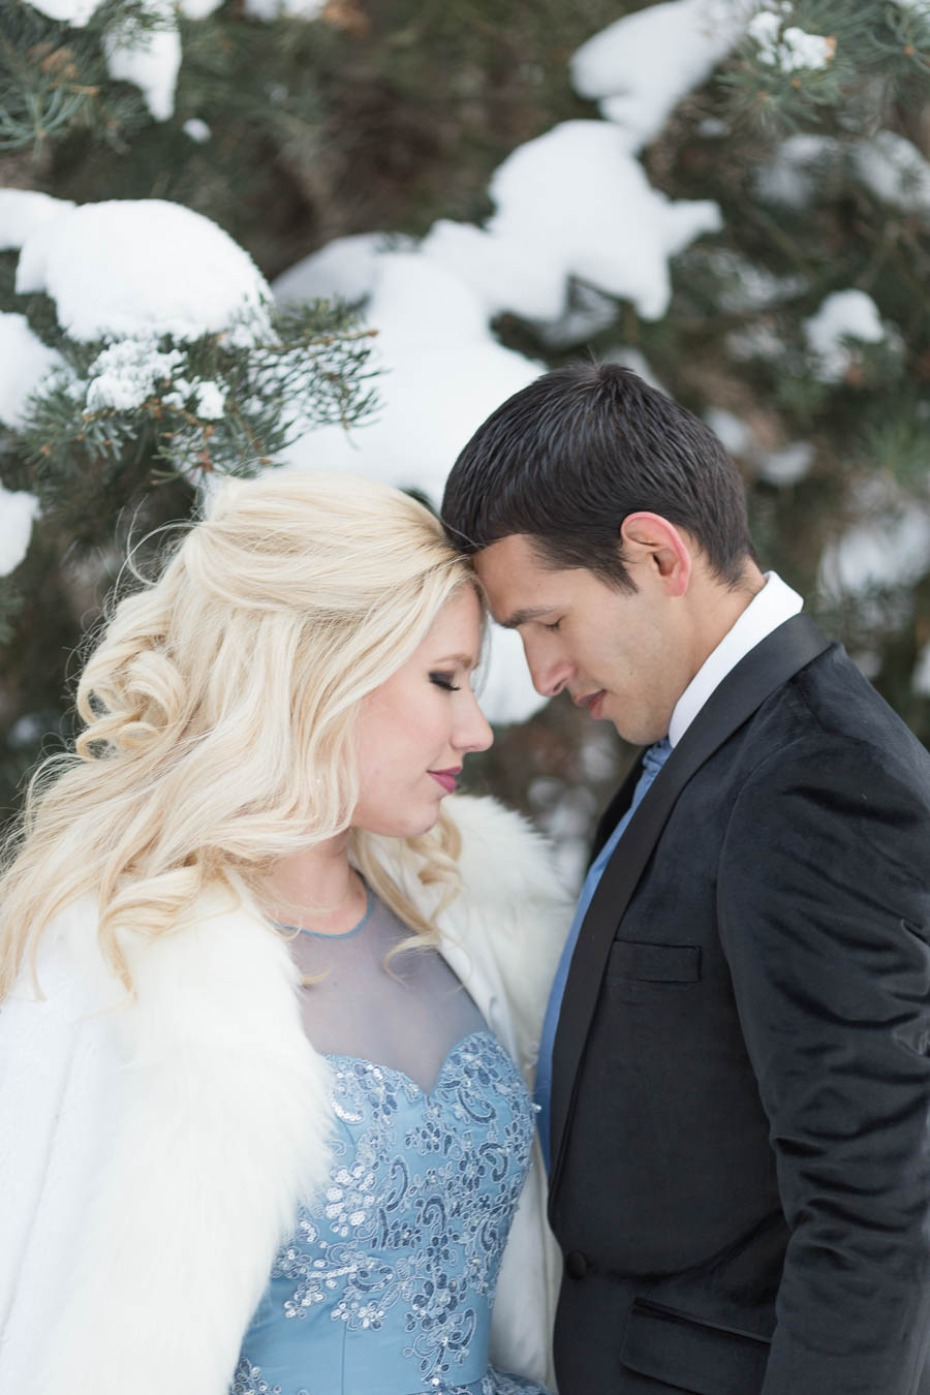 Disneys Frozen inspired wedding ideas